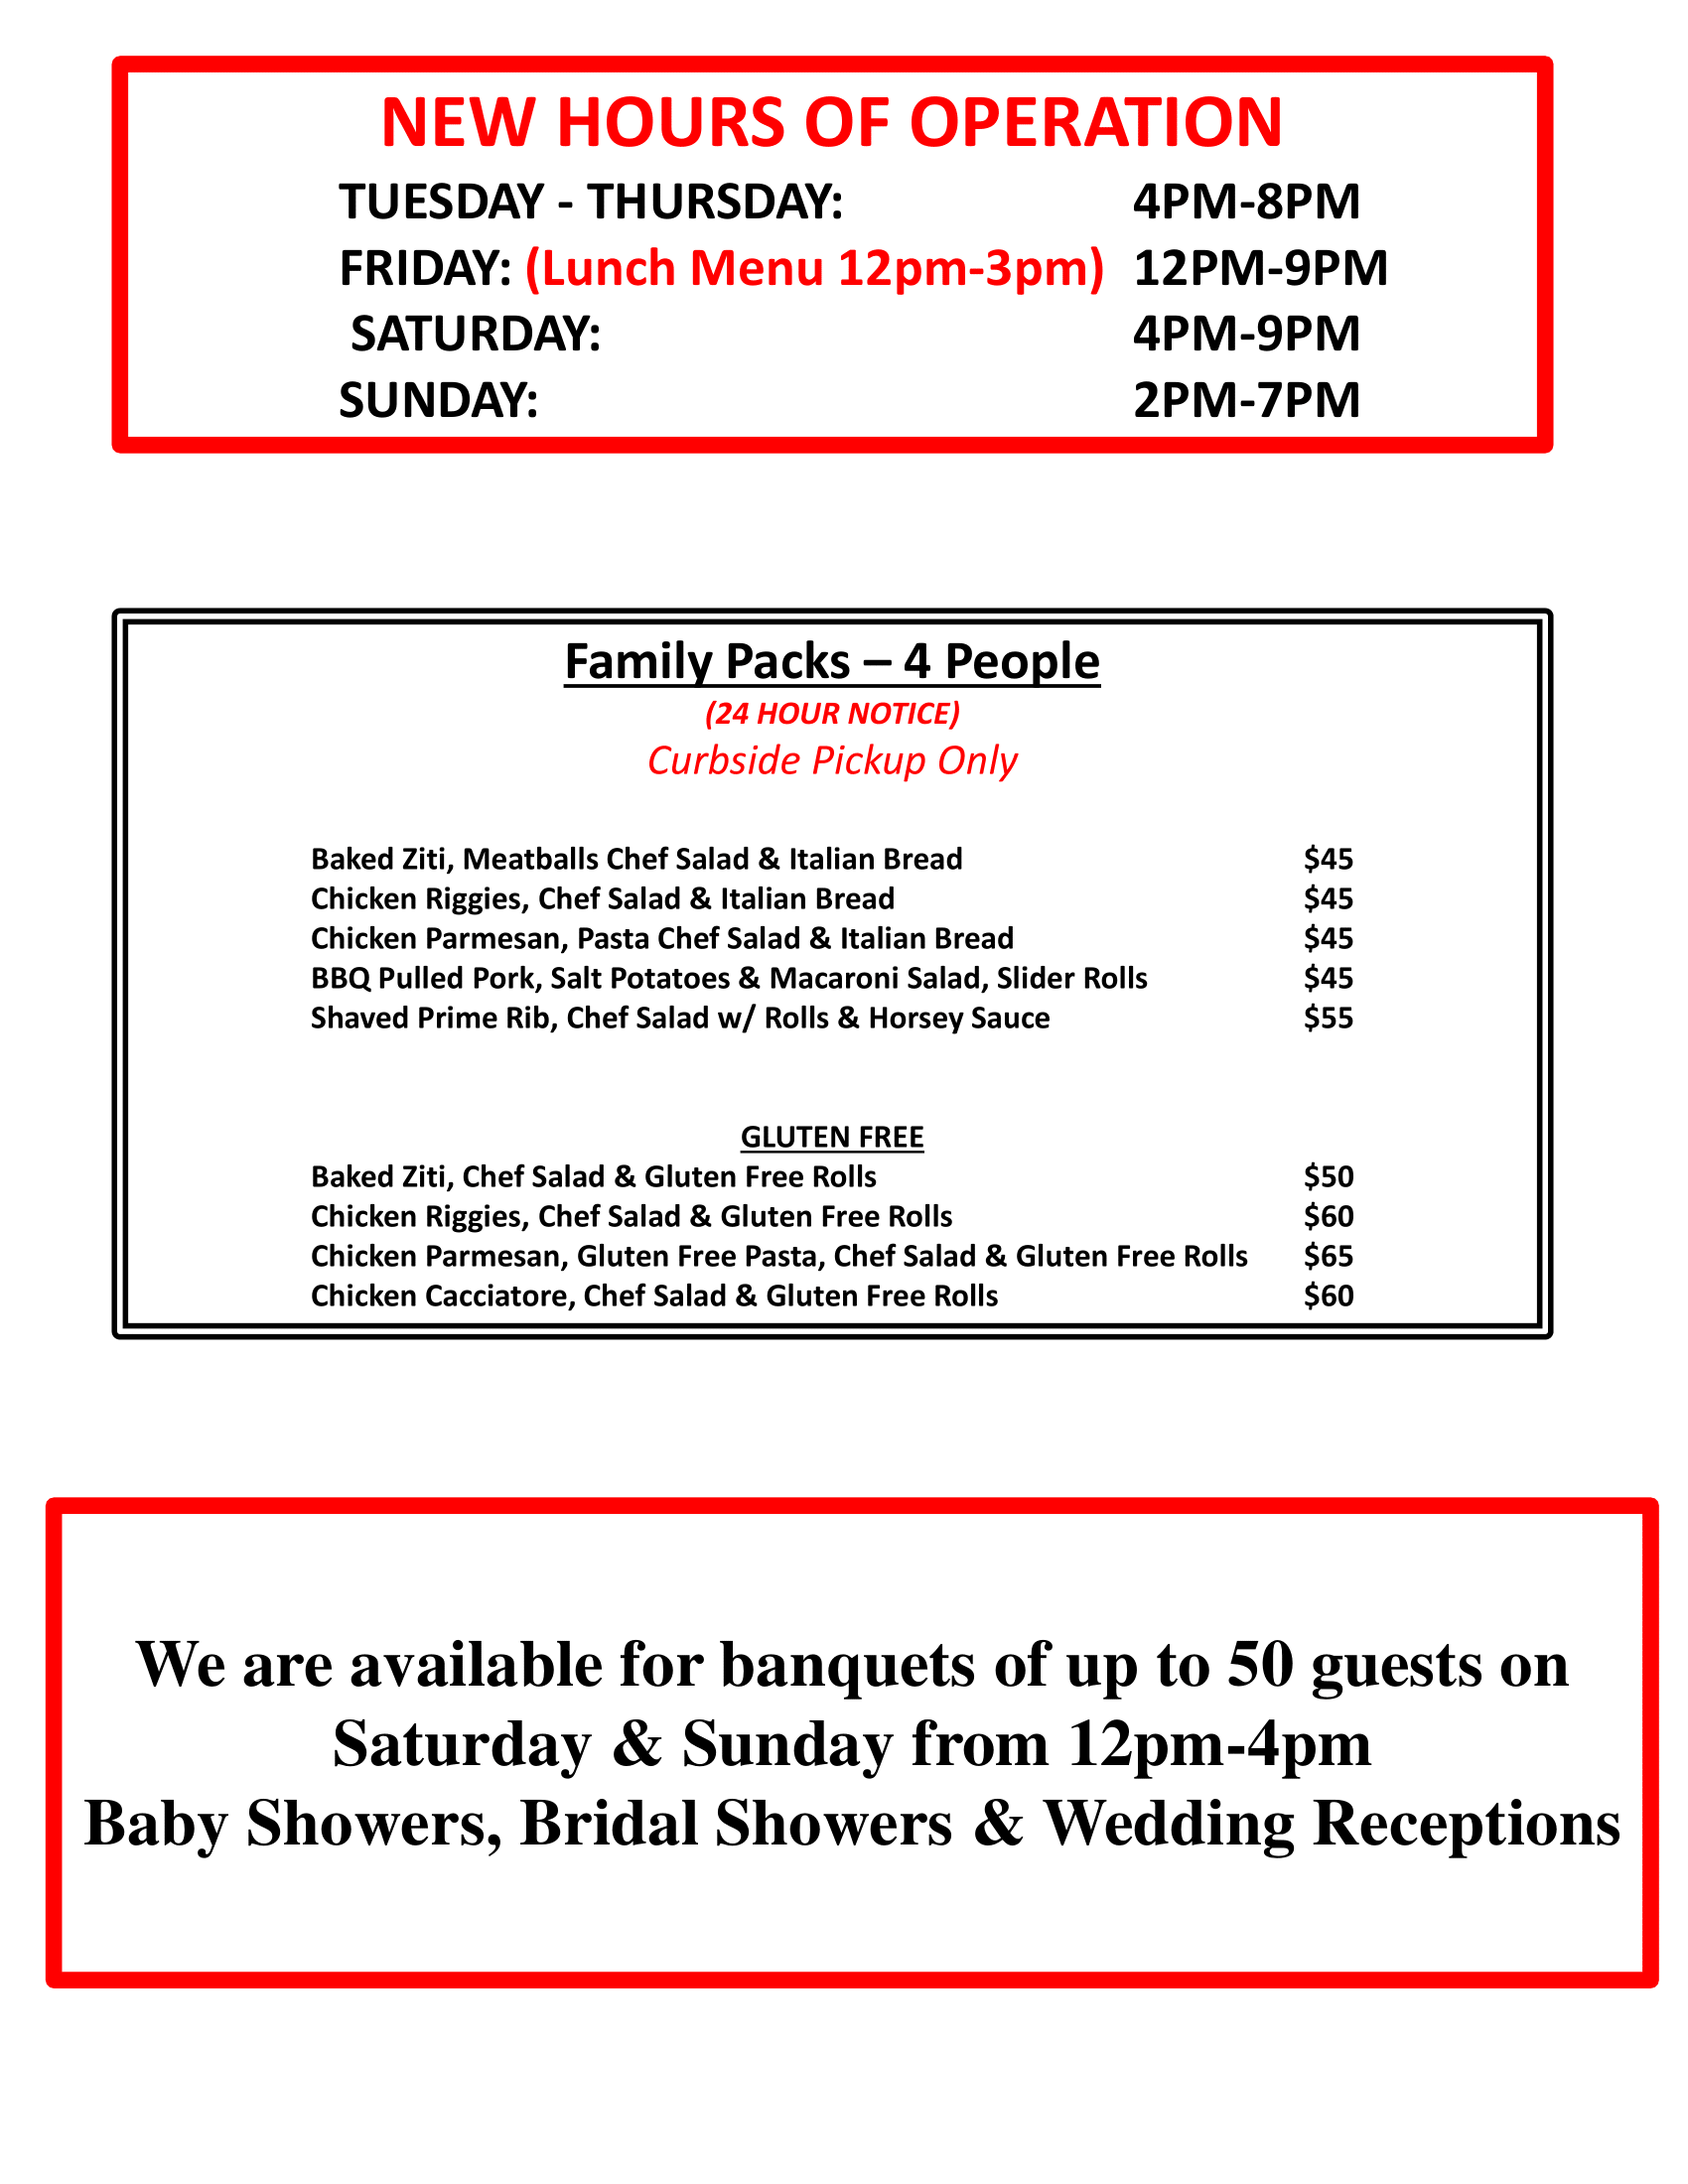 Family Packs – 4 People (24 HOUR NOTICE) Curbside Pickup Only Baked Ziti, Meatballs Chef Salad & Italian Bread $45 Chicken Riggies, Chef Salad & Italian Bread $45 Chicken Parmesan, Pasta Chef Salad & Italian Bread $45 BBQ Pulled Pork, Salt Potatoes & Macaroni Salad, Slider Rolls $45 Shaved Prime Rib, Chef Salad w/ Rolls & Horsey Sauce $55 GLUTEN FREE Baked Ziti, Chef Salad & Gluten Free Rolls $50 Chicken Riggies, Chef Salad & Gluten Free Rolls $60 Chicken Parmesan, Gluten Free Pasta, Chef Salad & Gluten Free Rolls $65 Chicken Cacciatore, Chef Salad & Gluten Free Rolls $60 NEW HOURS OF OPERATION TUESDAY - THURSDAY: 4PM-8PM FRIDAY: (Lunch Menu 12pm-3pm) 12PM-9PM SATURDAY: 4PM-9PM SUNDAY: 2PM-7PM We are available for banquets of up to 50 guests on Saturday & Sunday from 12pm-4pm Baby Showers, Bridal Showers & Wedding Receptions